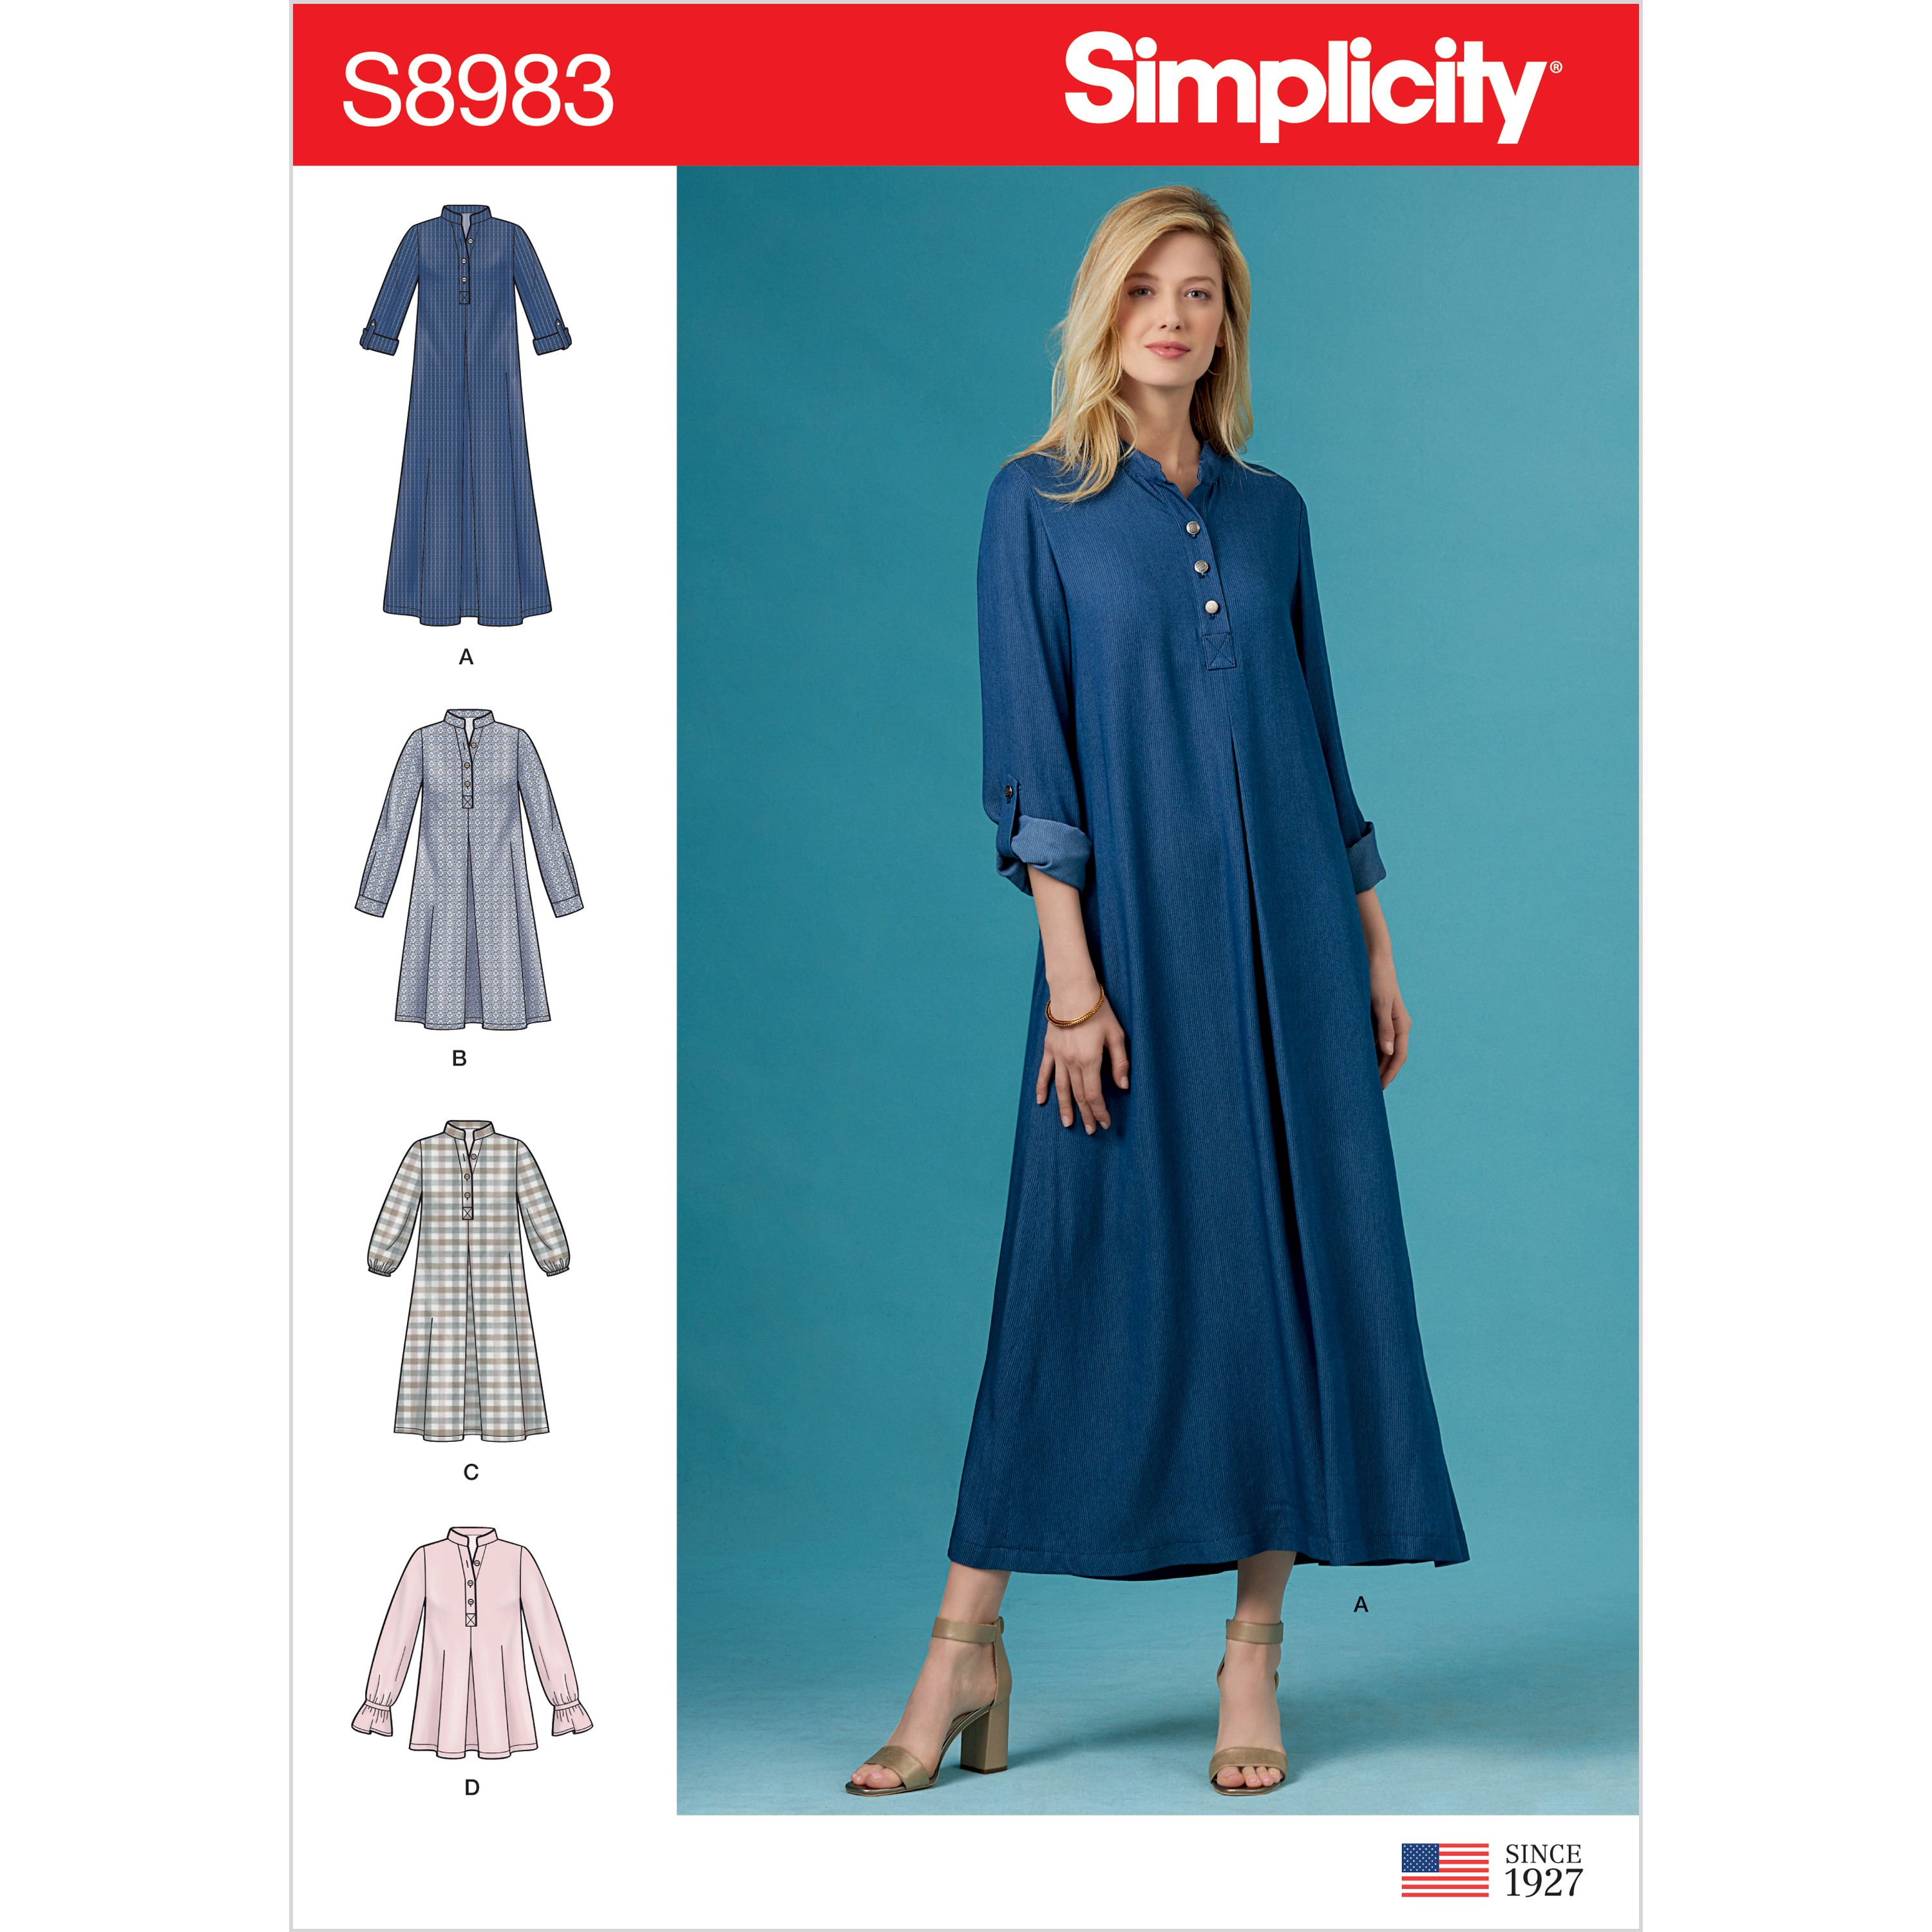 Simplicity Sewing Pattern 8983 Misses' Dresses With Sleeve Variation